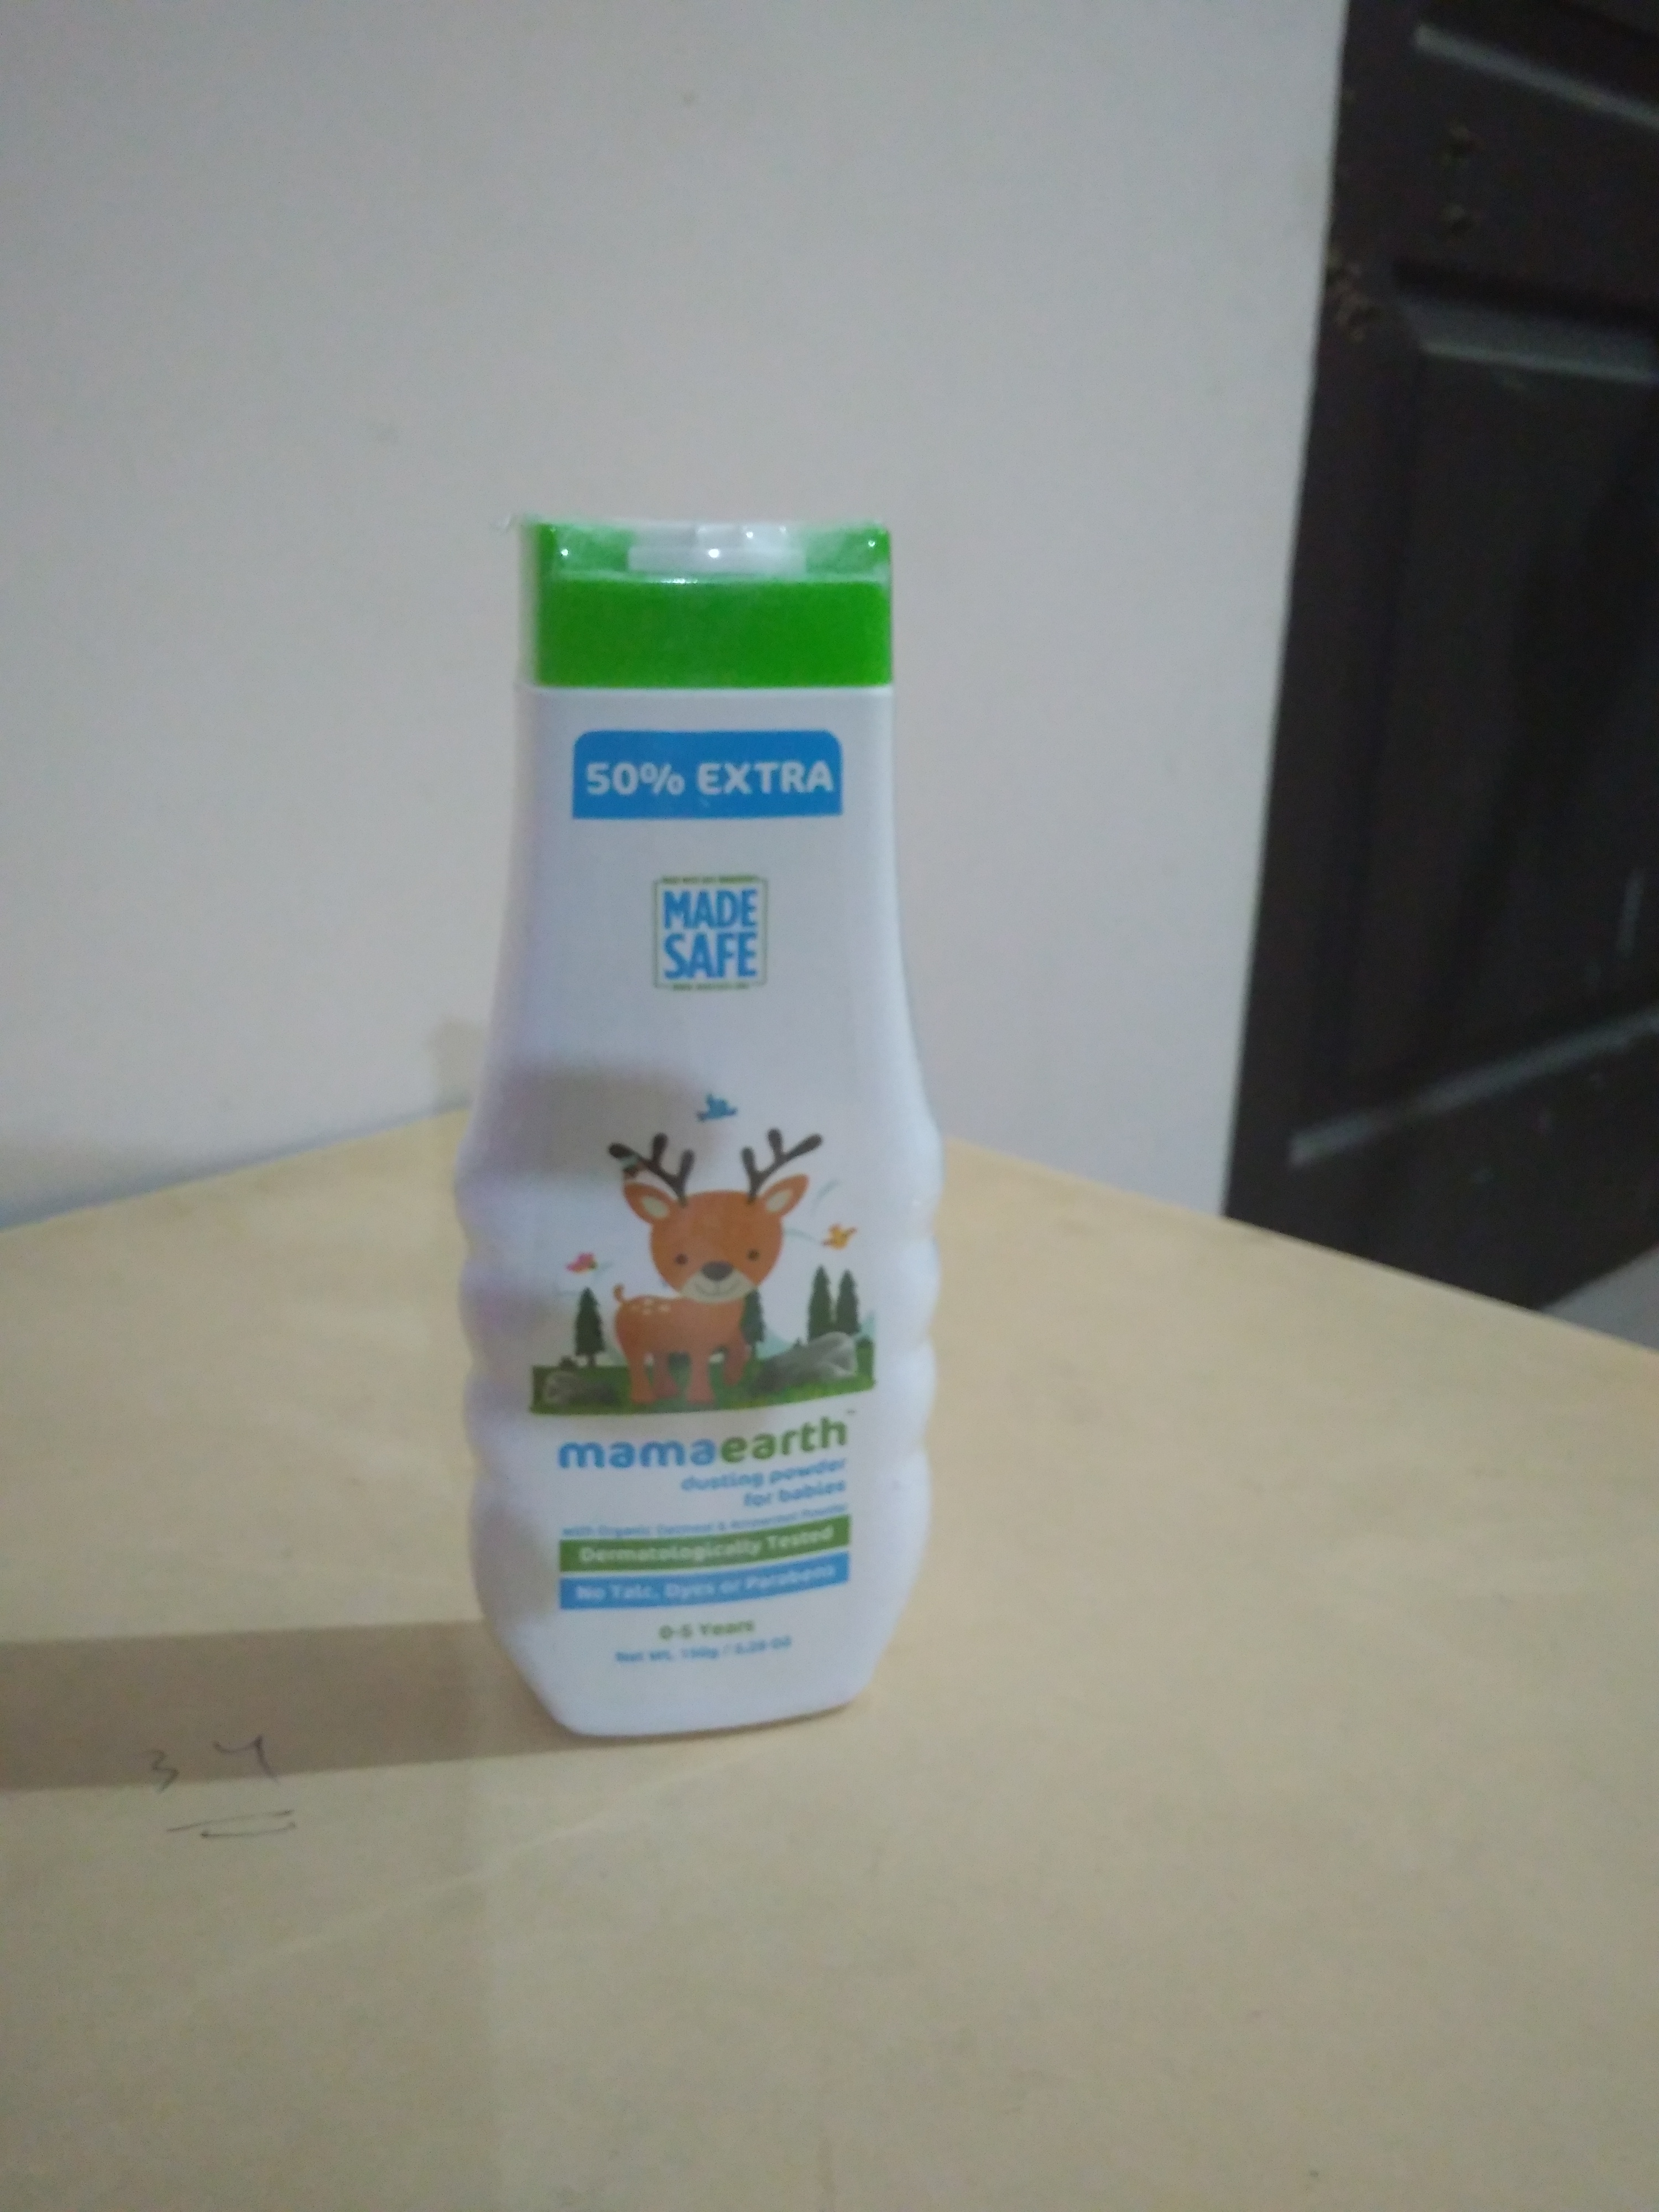 Mamaearth Talc Free Organic Dusting Powder for Babies, Arrowroot and Oat Starch-Mamaearth Dusting Powder really very nice-By jigna1234